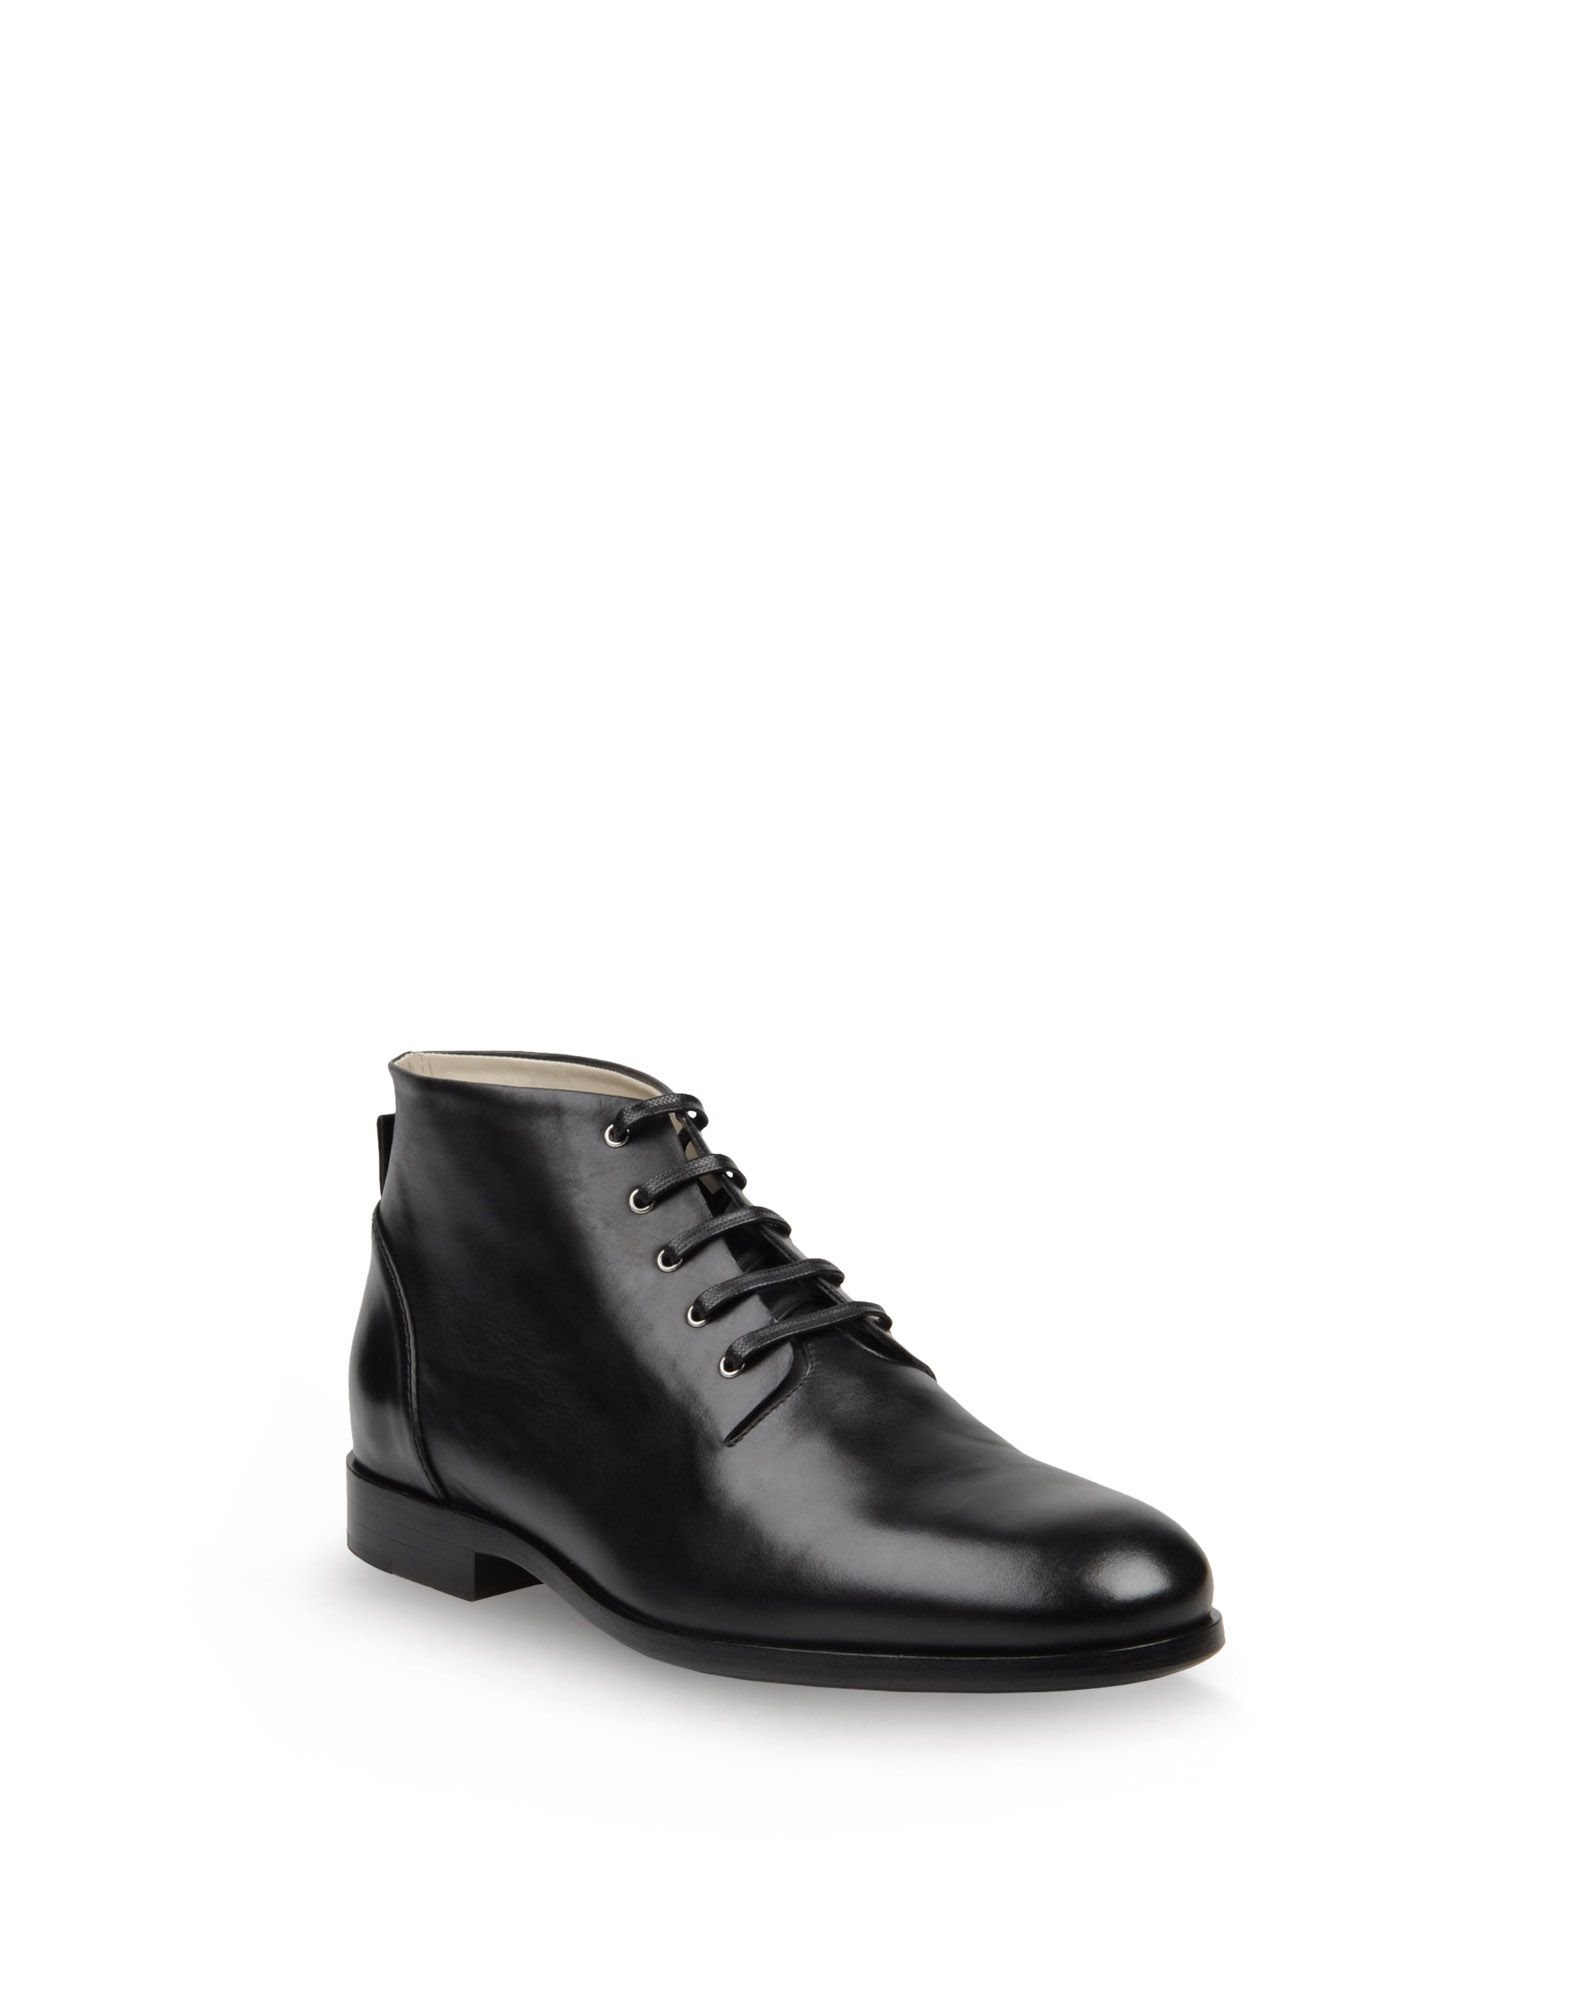 Ankle boots - JIL SANDER NAVY Online Store